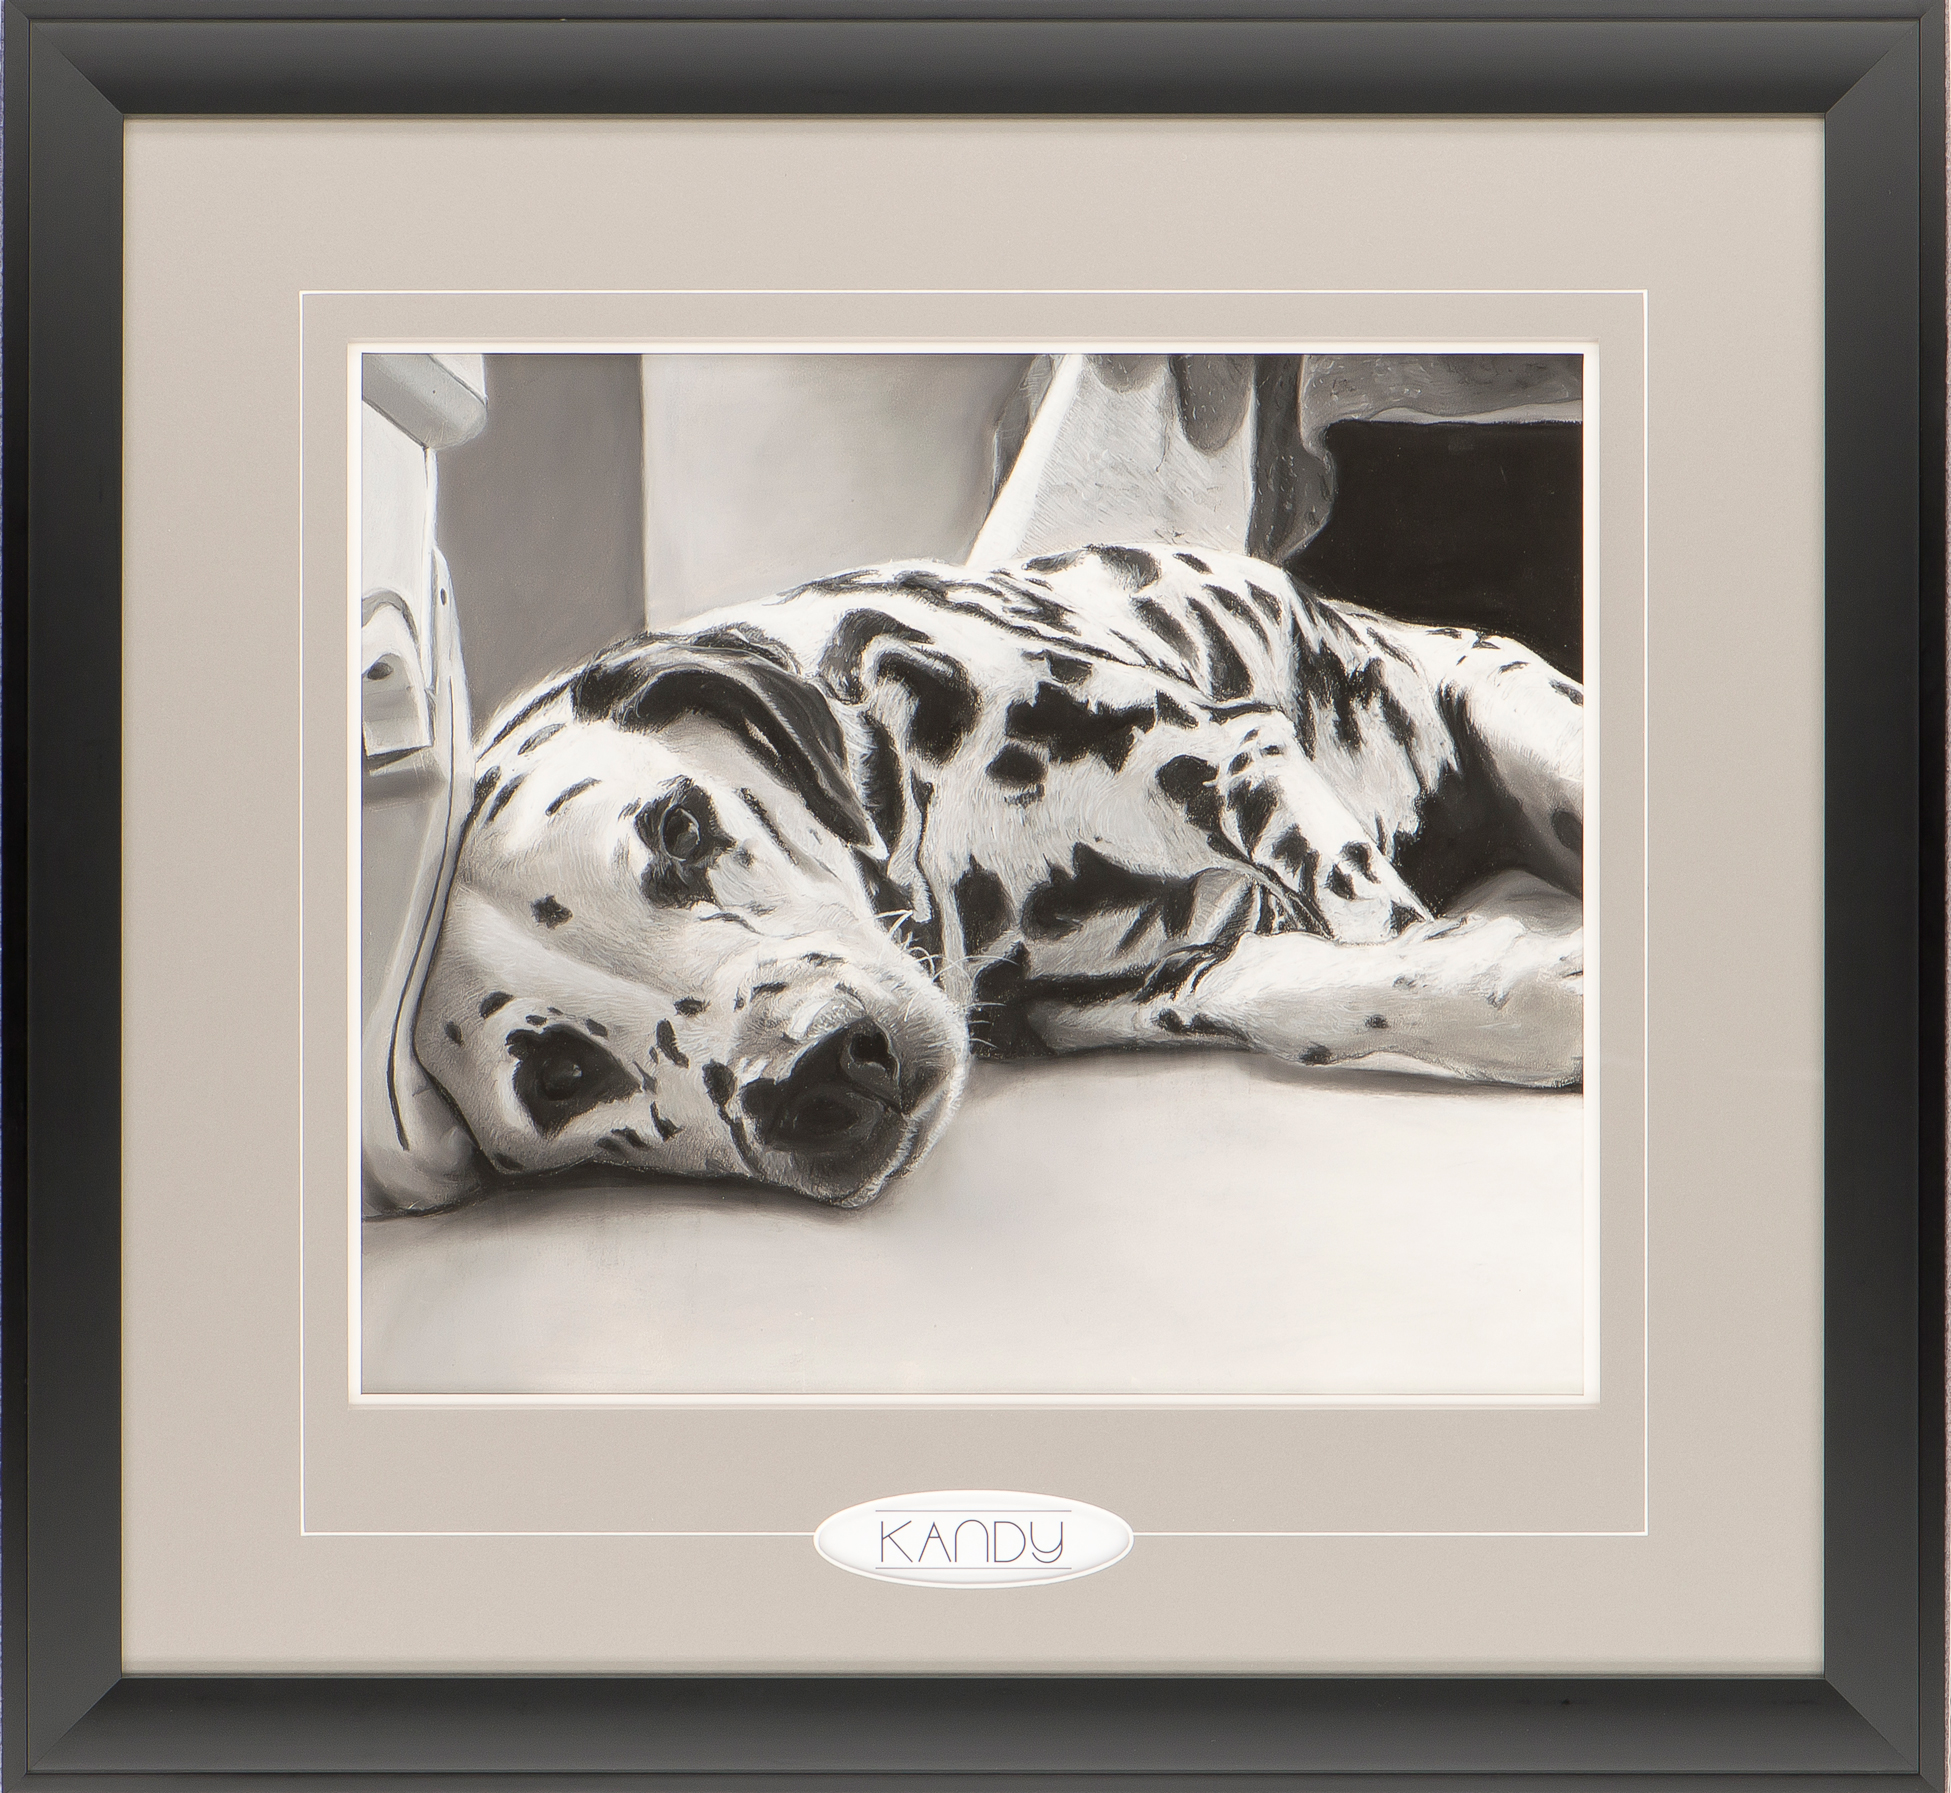 Kandy the Dalmation